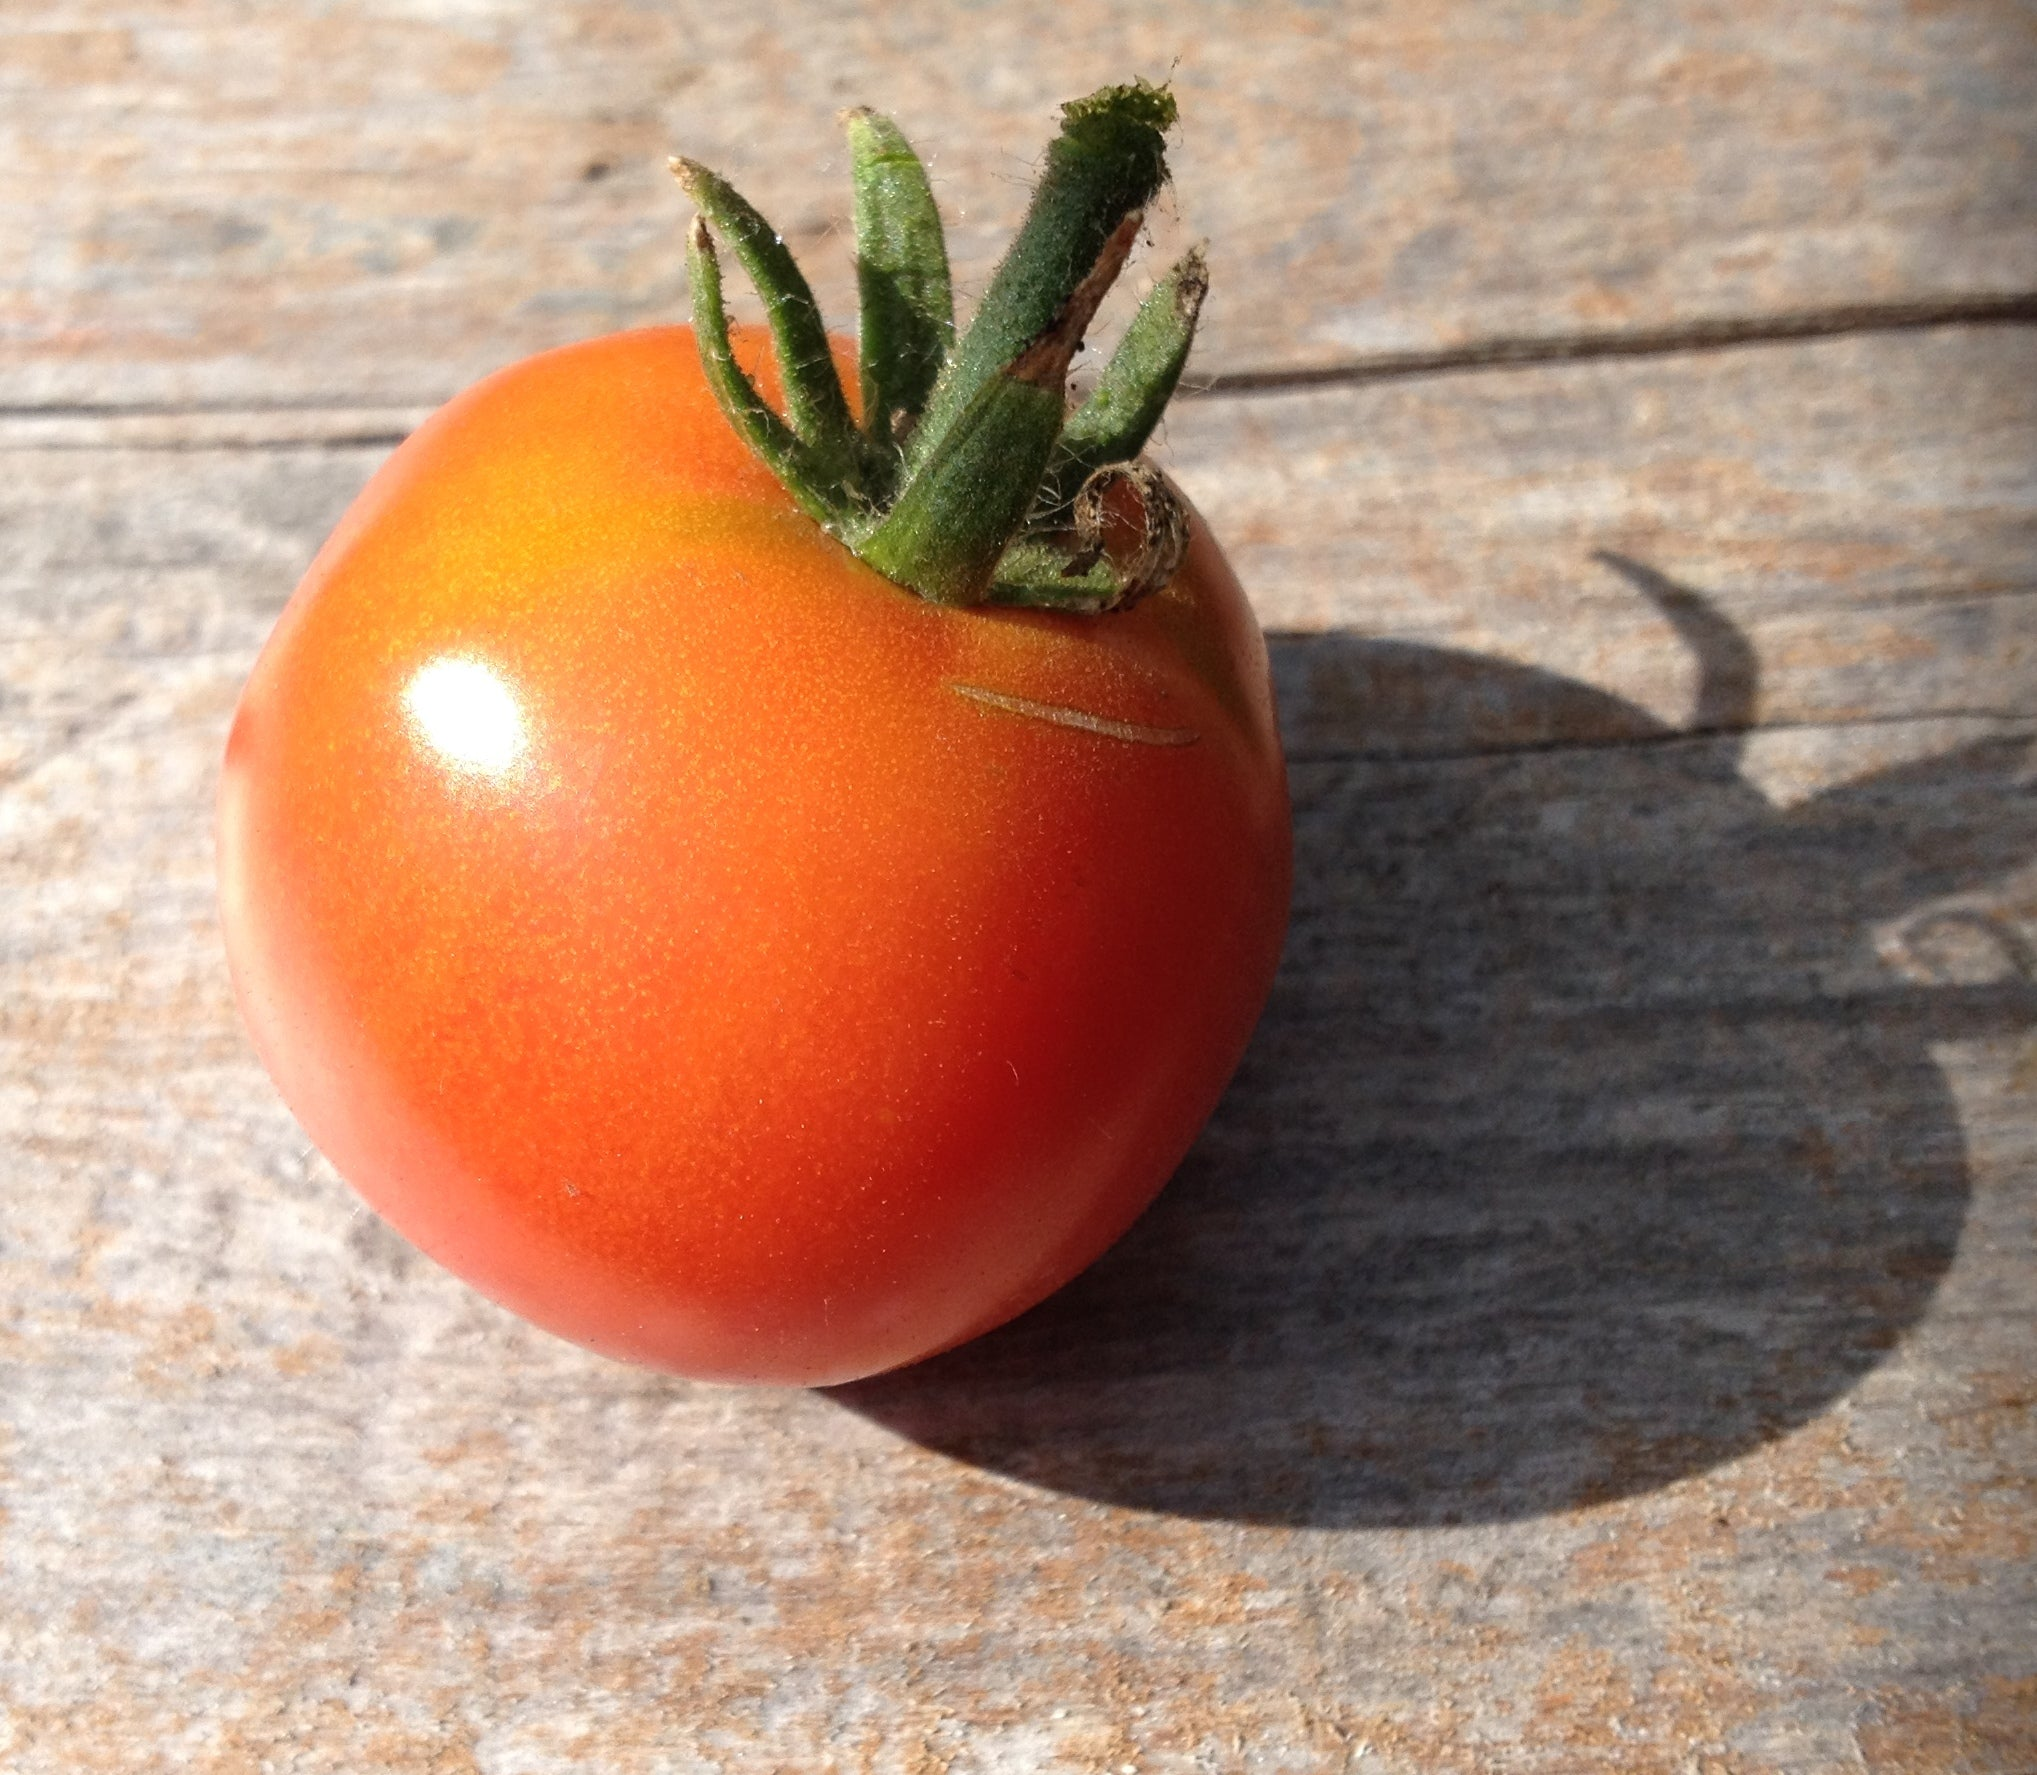 Stupice-Tomatoes-Vegetables-Full Circle Seeds